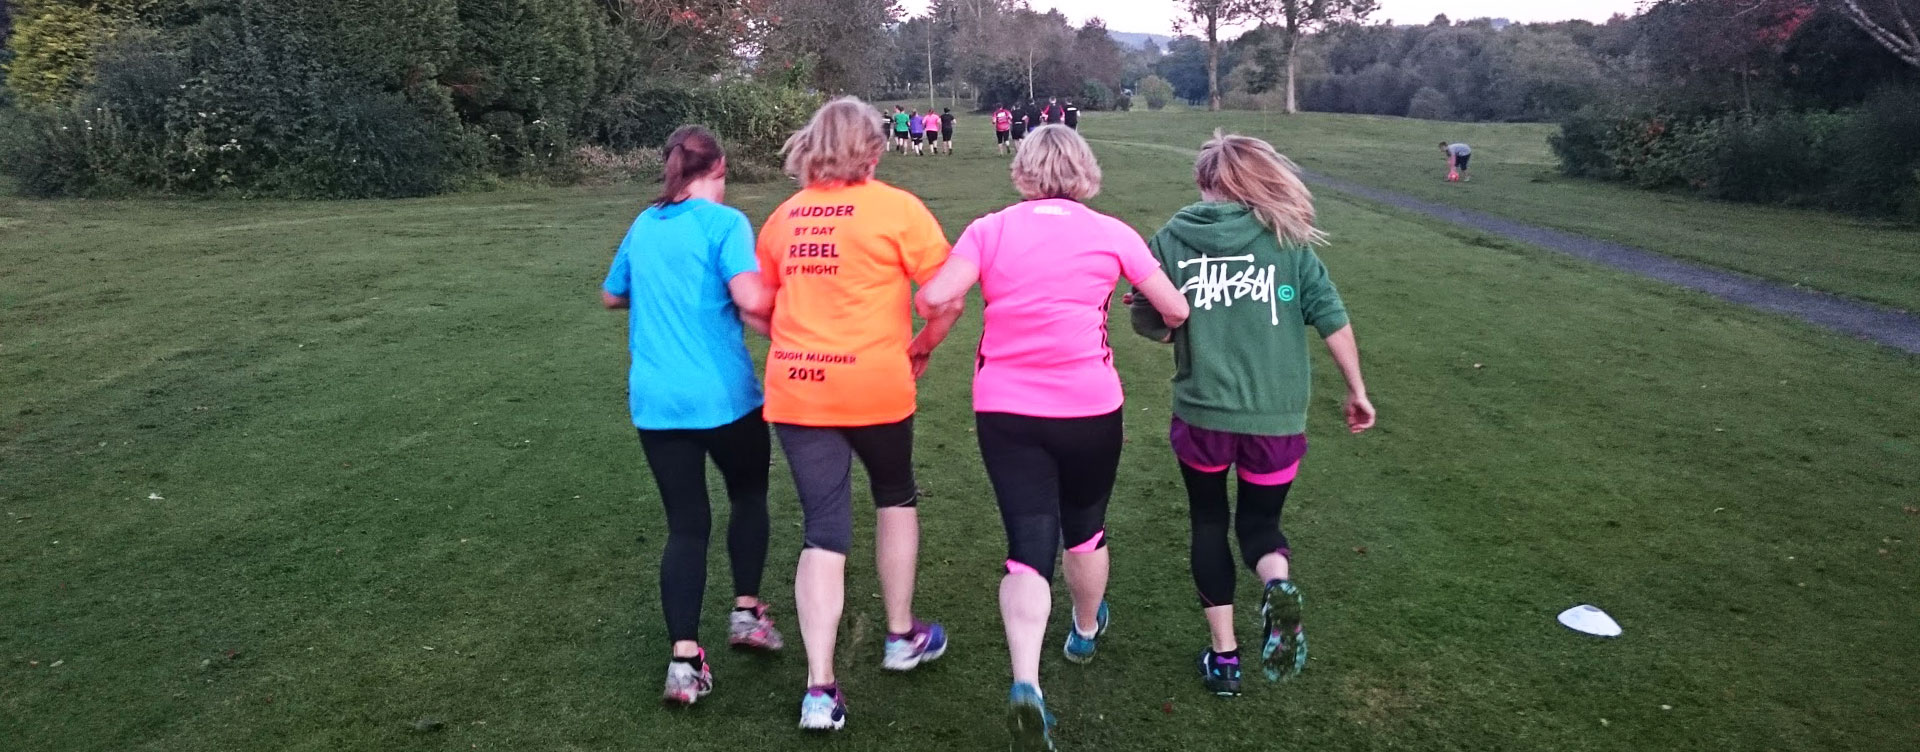 We're RebelPT, an outdoor fitness and social club in Aberdeen. We promote long-term healthy lifestyles by helping our members to enjoy being more active in our bootcamp-style classes.